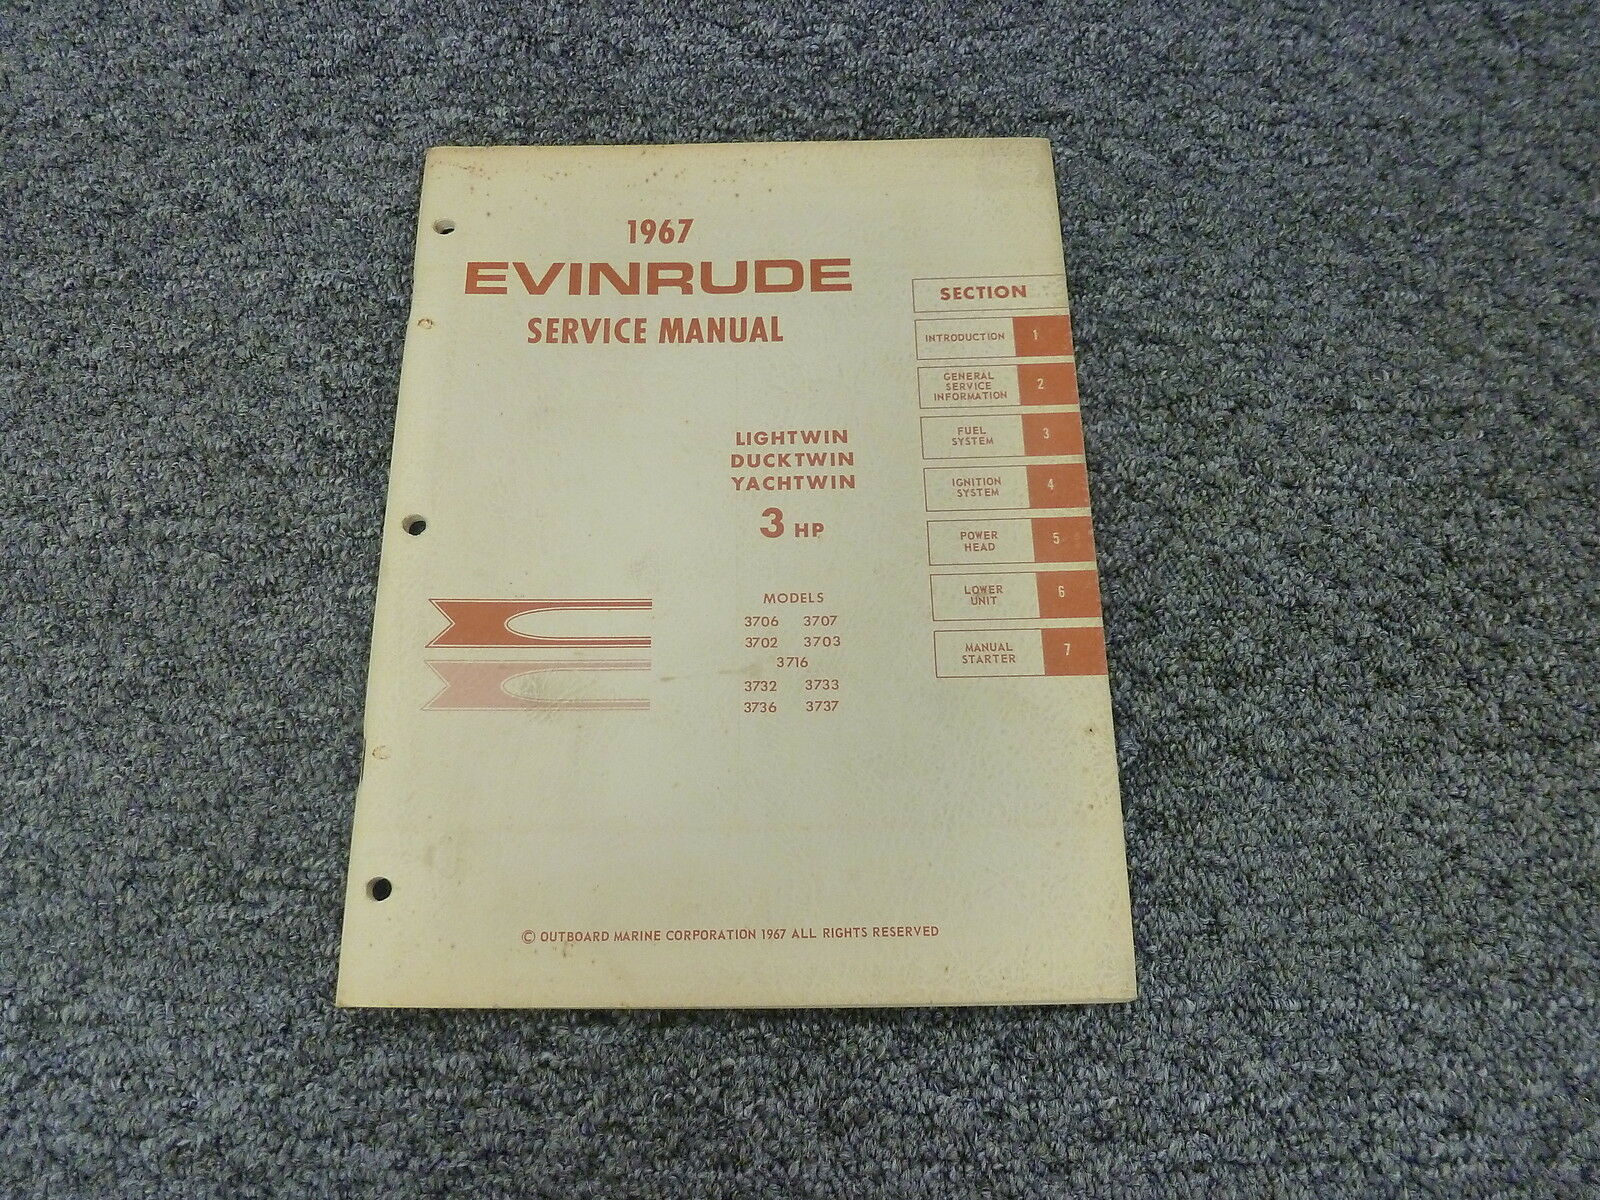 1967 Evinrude Lightwin Ducktwin Yachtwin 3 HP Model Shop Service Repair  Manual 1 of 1Only 1 available ...